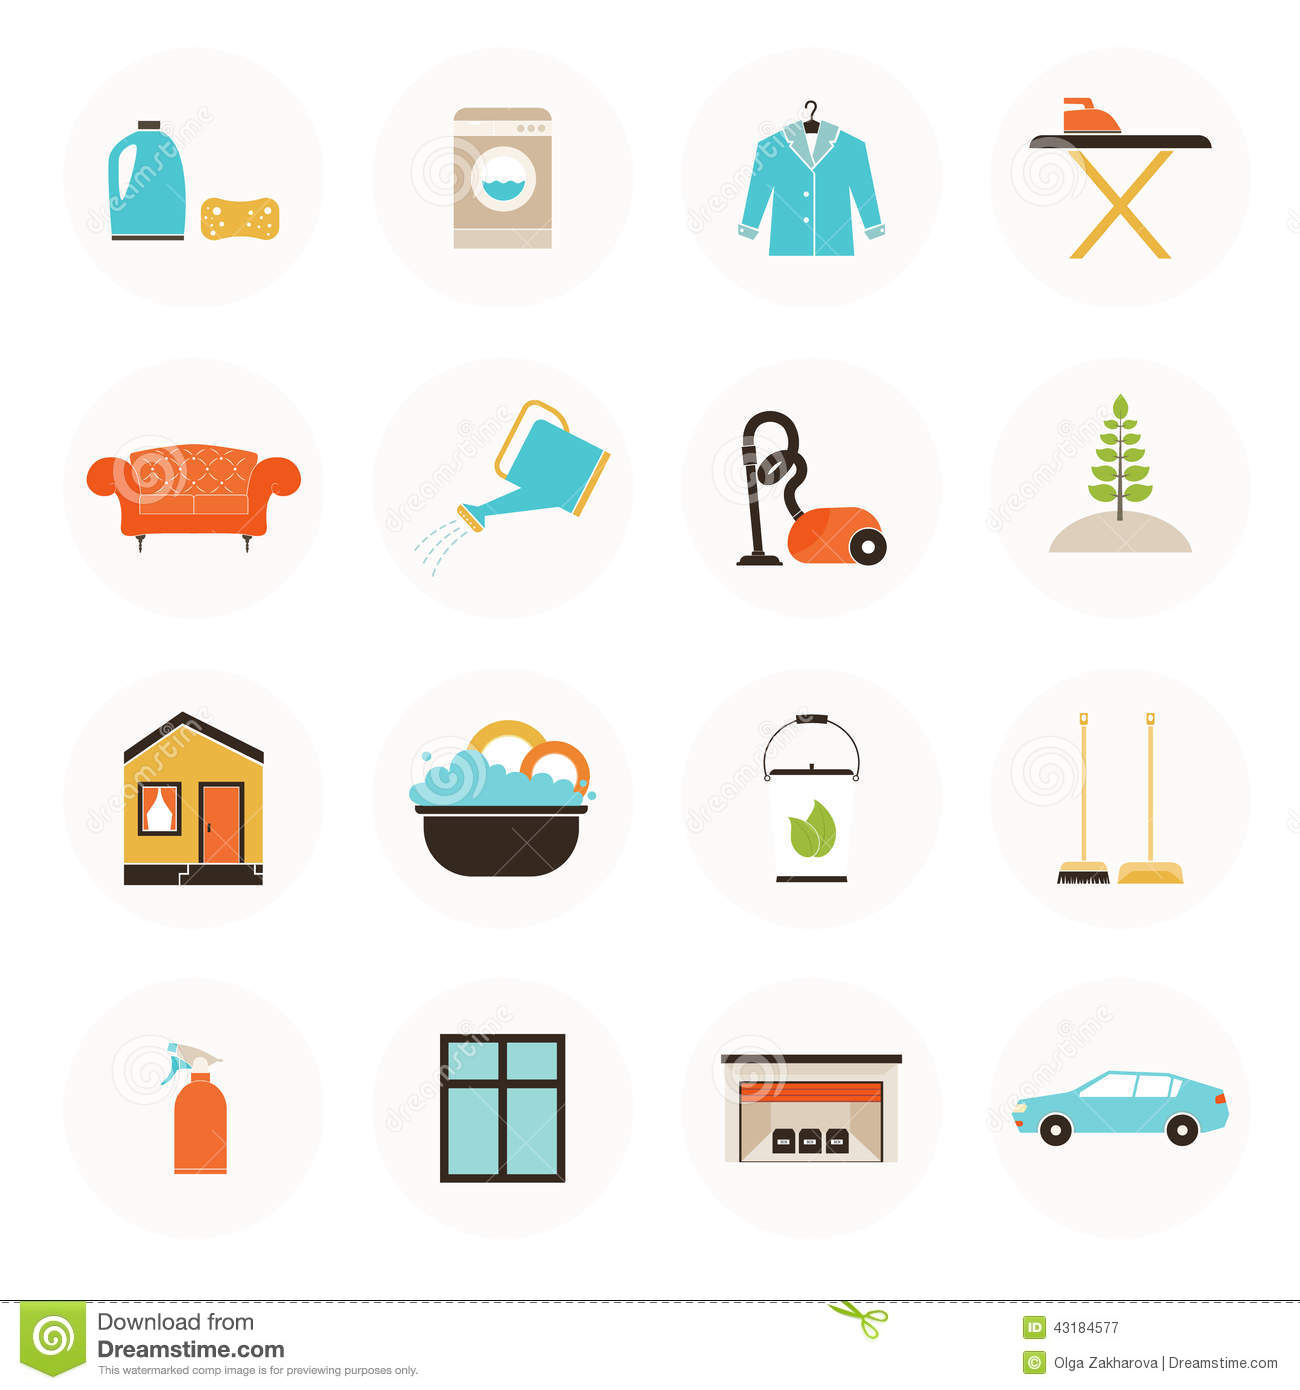 3d Furniture Planner Housekeeping Icons Stock Illustration Image 43184577